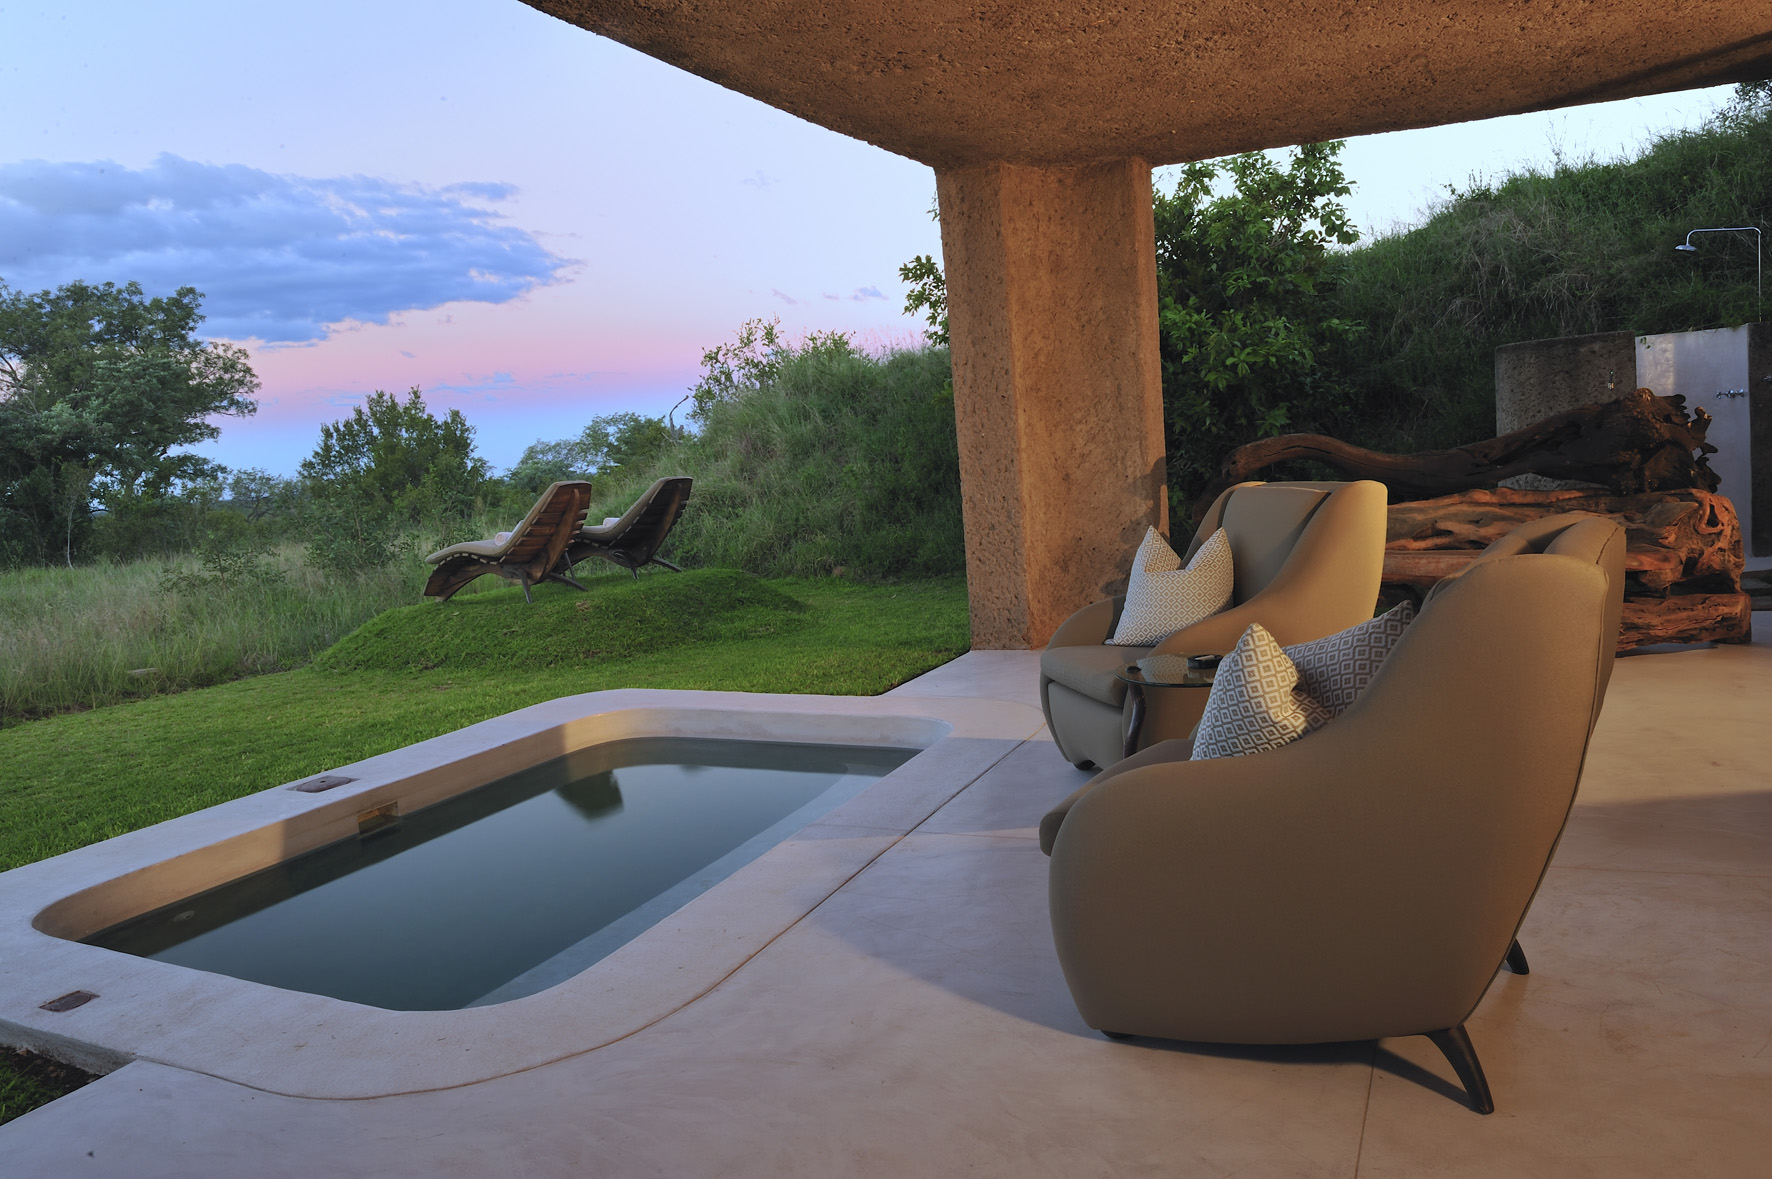 View of a patio, chairs and a plunge pool looking out towards green bush